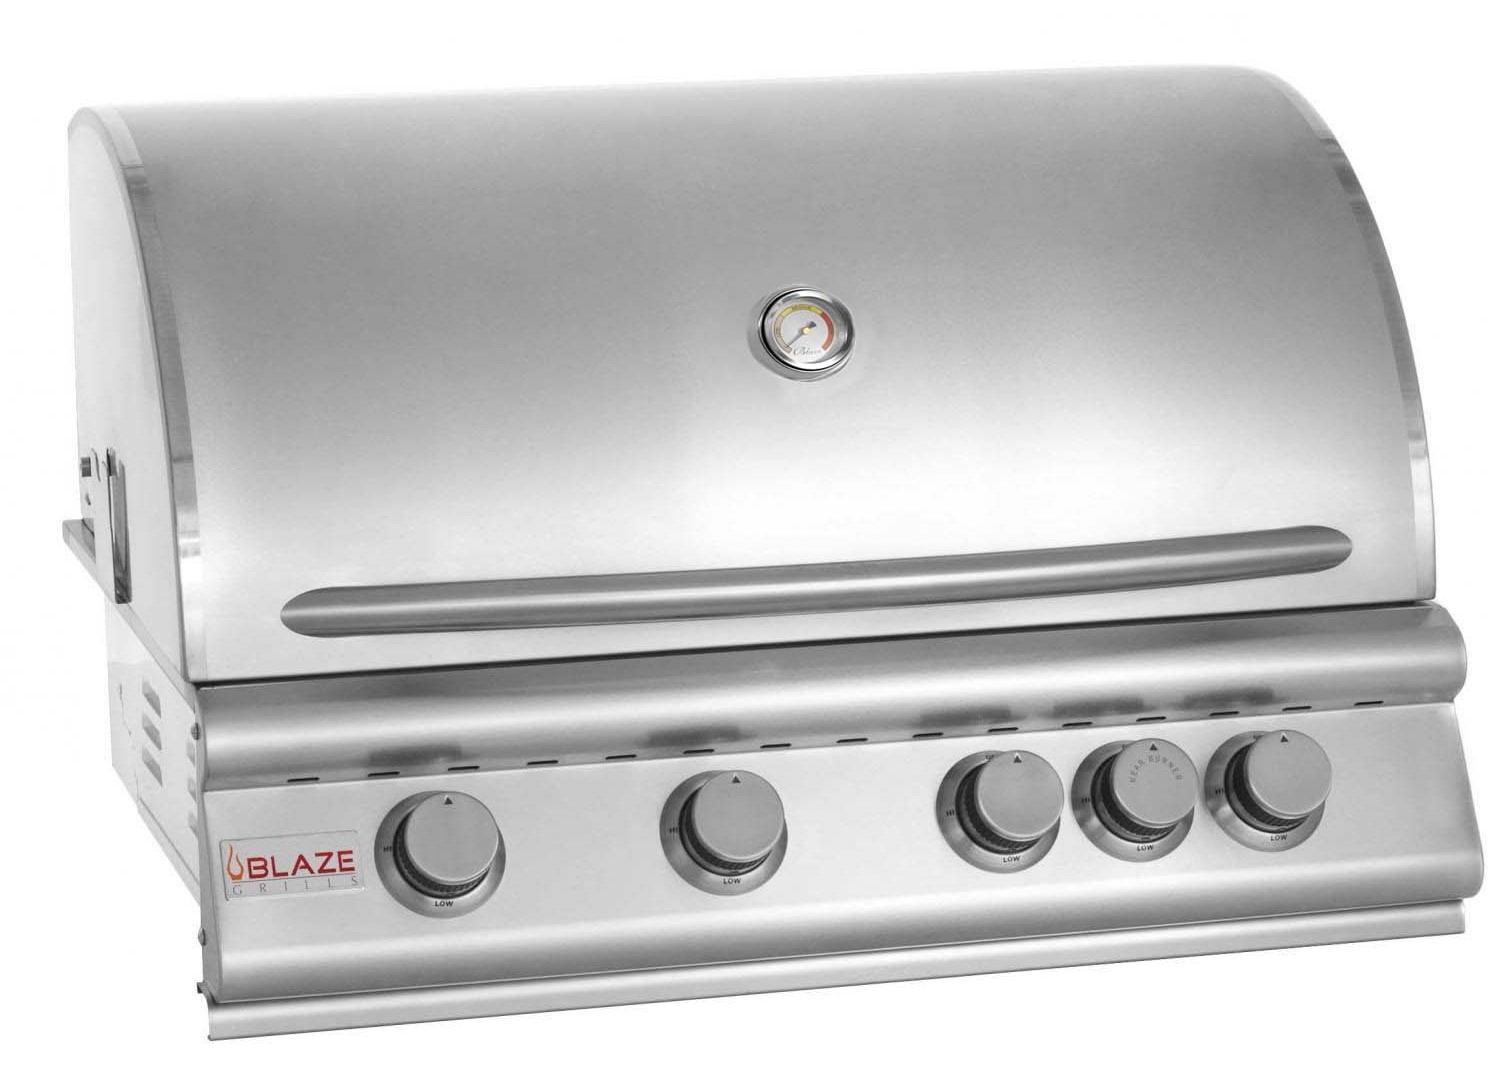 Blaze 4 Burner Built in Grill with Rotisserie